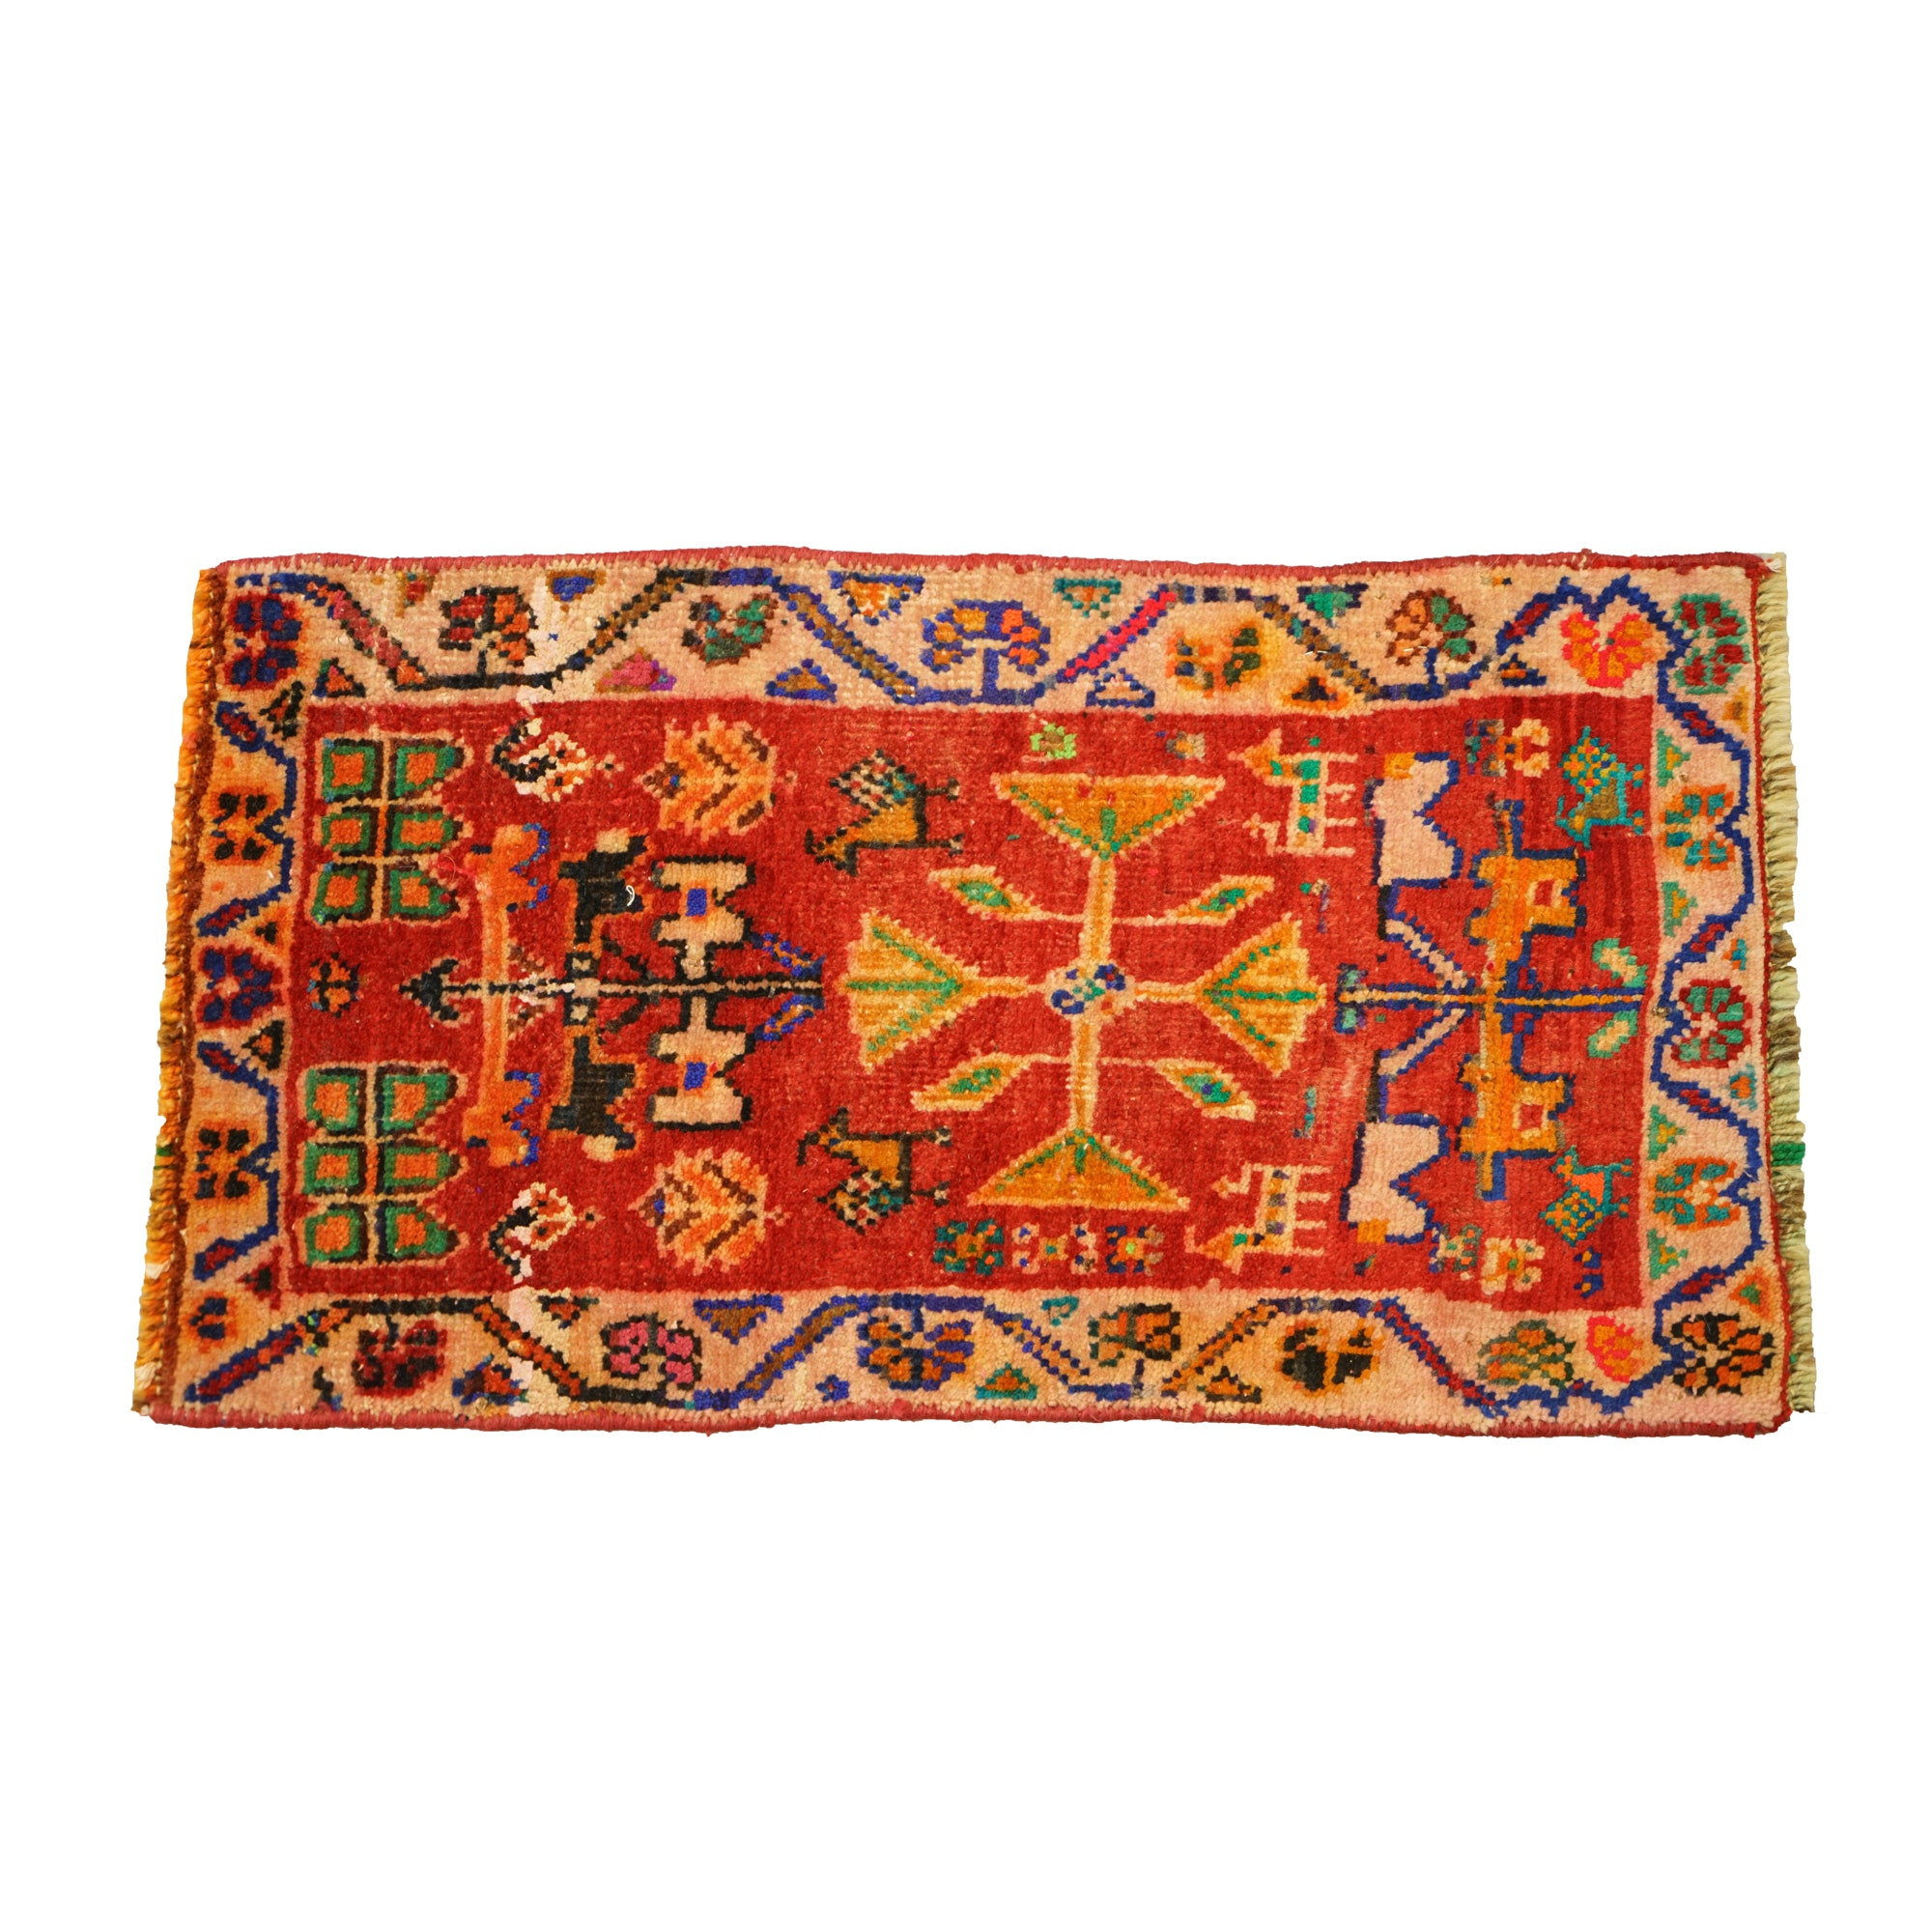 Hand-Knotted Persian Tribal Wool Floor Mat